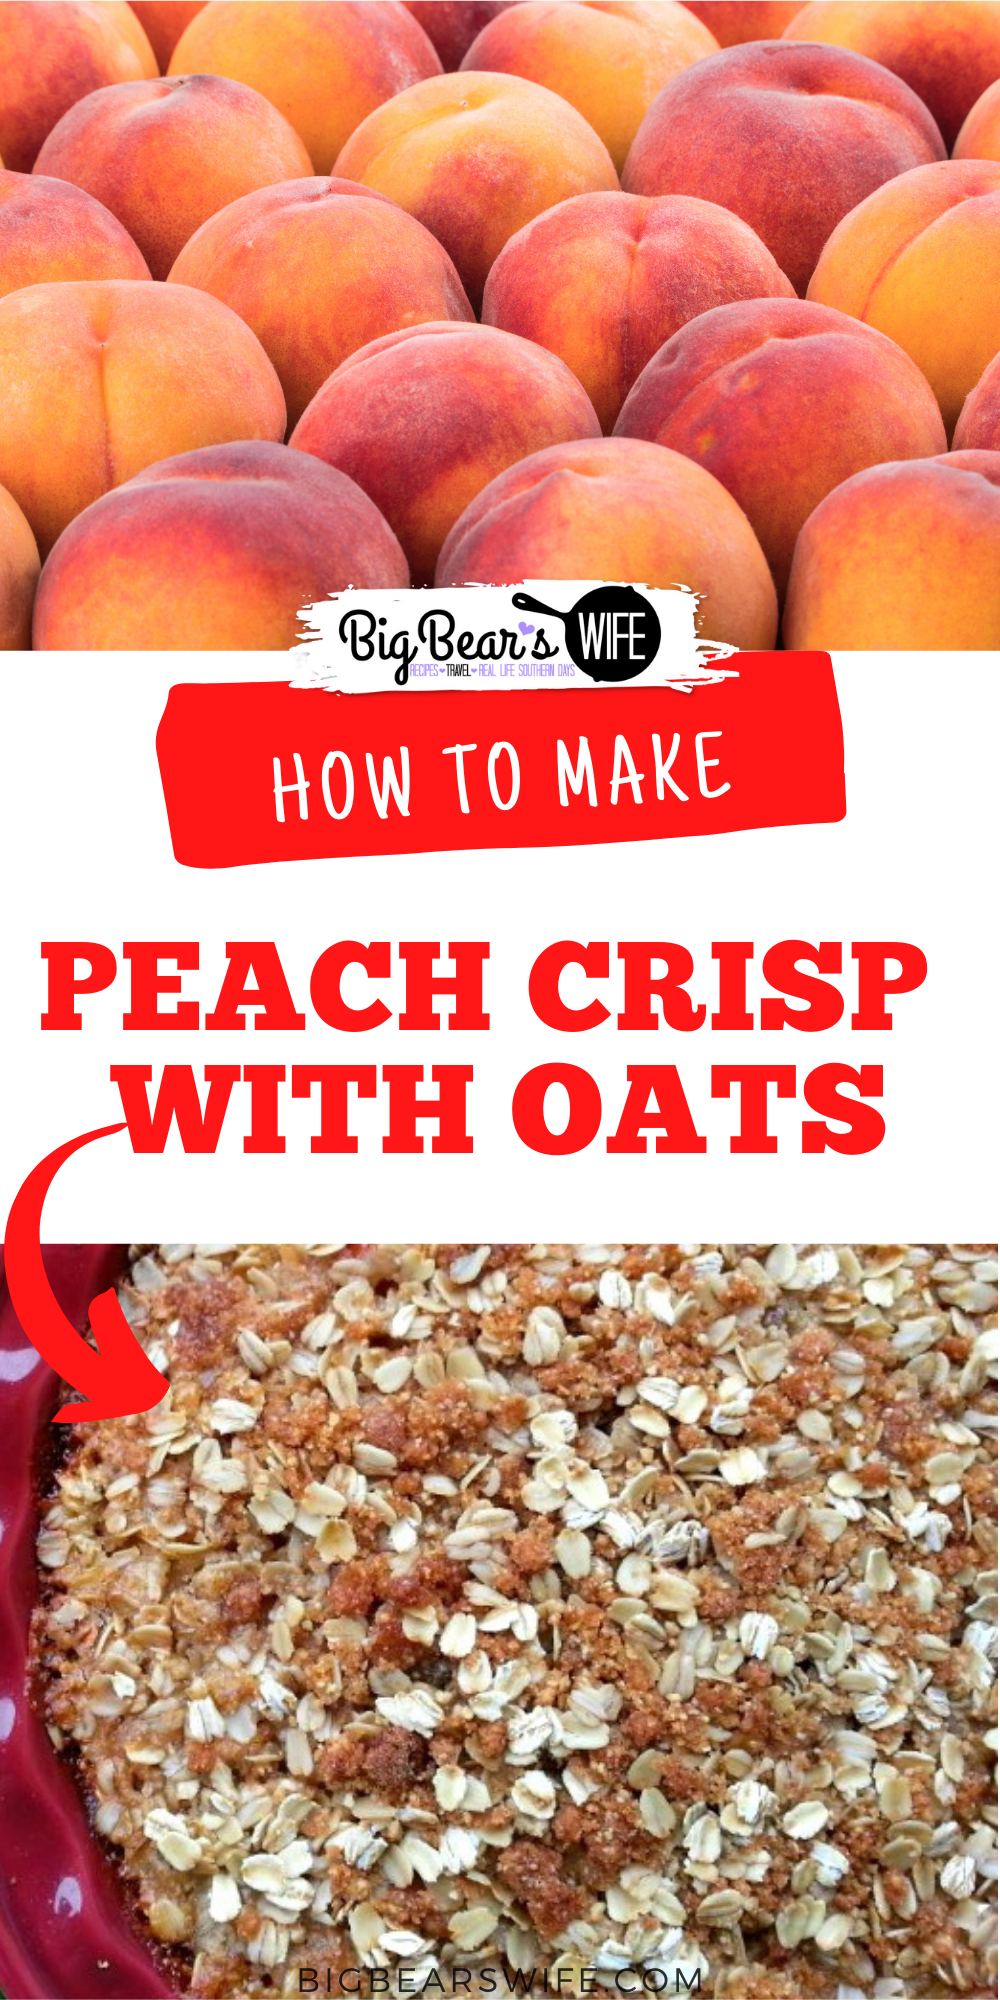 This peach crisp is made with an almond flour and oat topping which makes it a great gluten free dessert!  via @bigbearswife